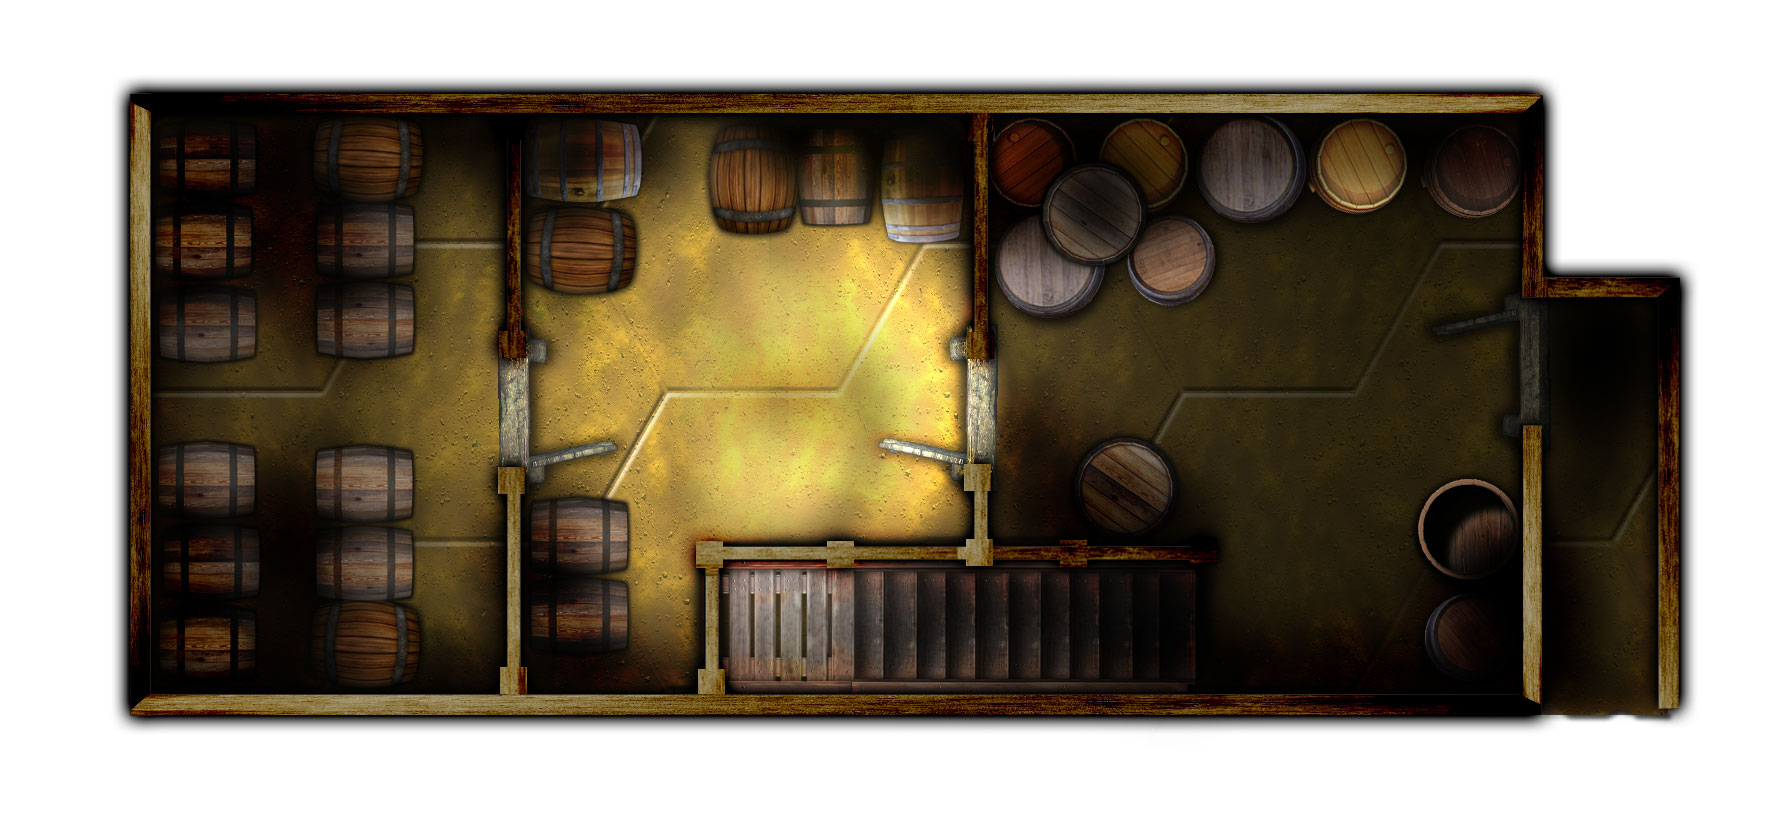 Wickshine's Last Inn Cellar